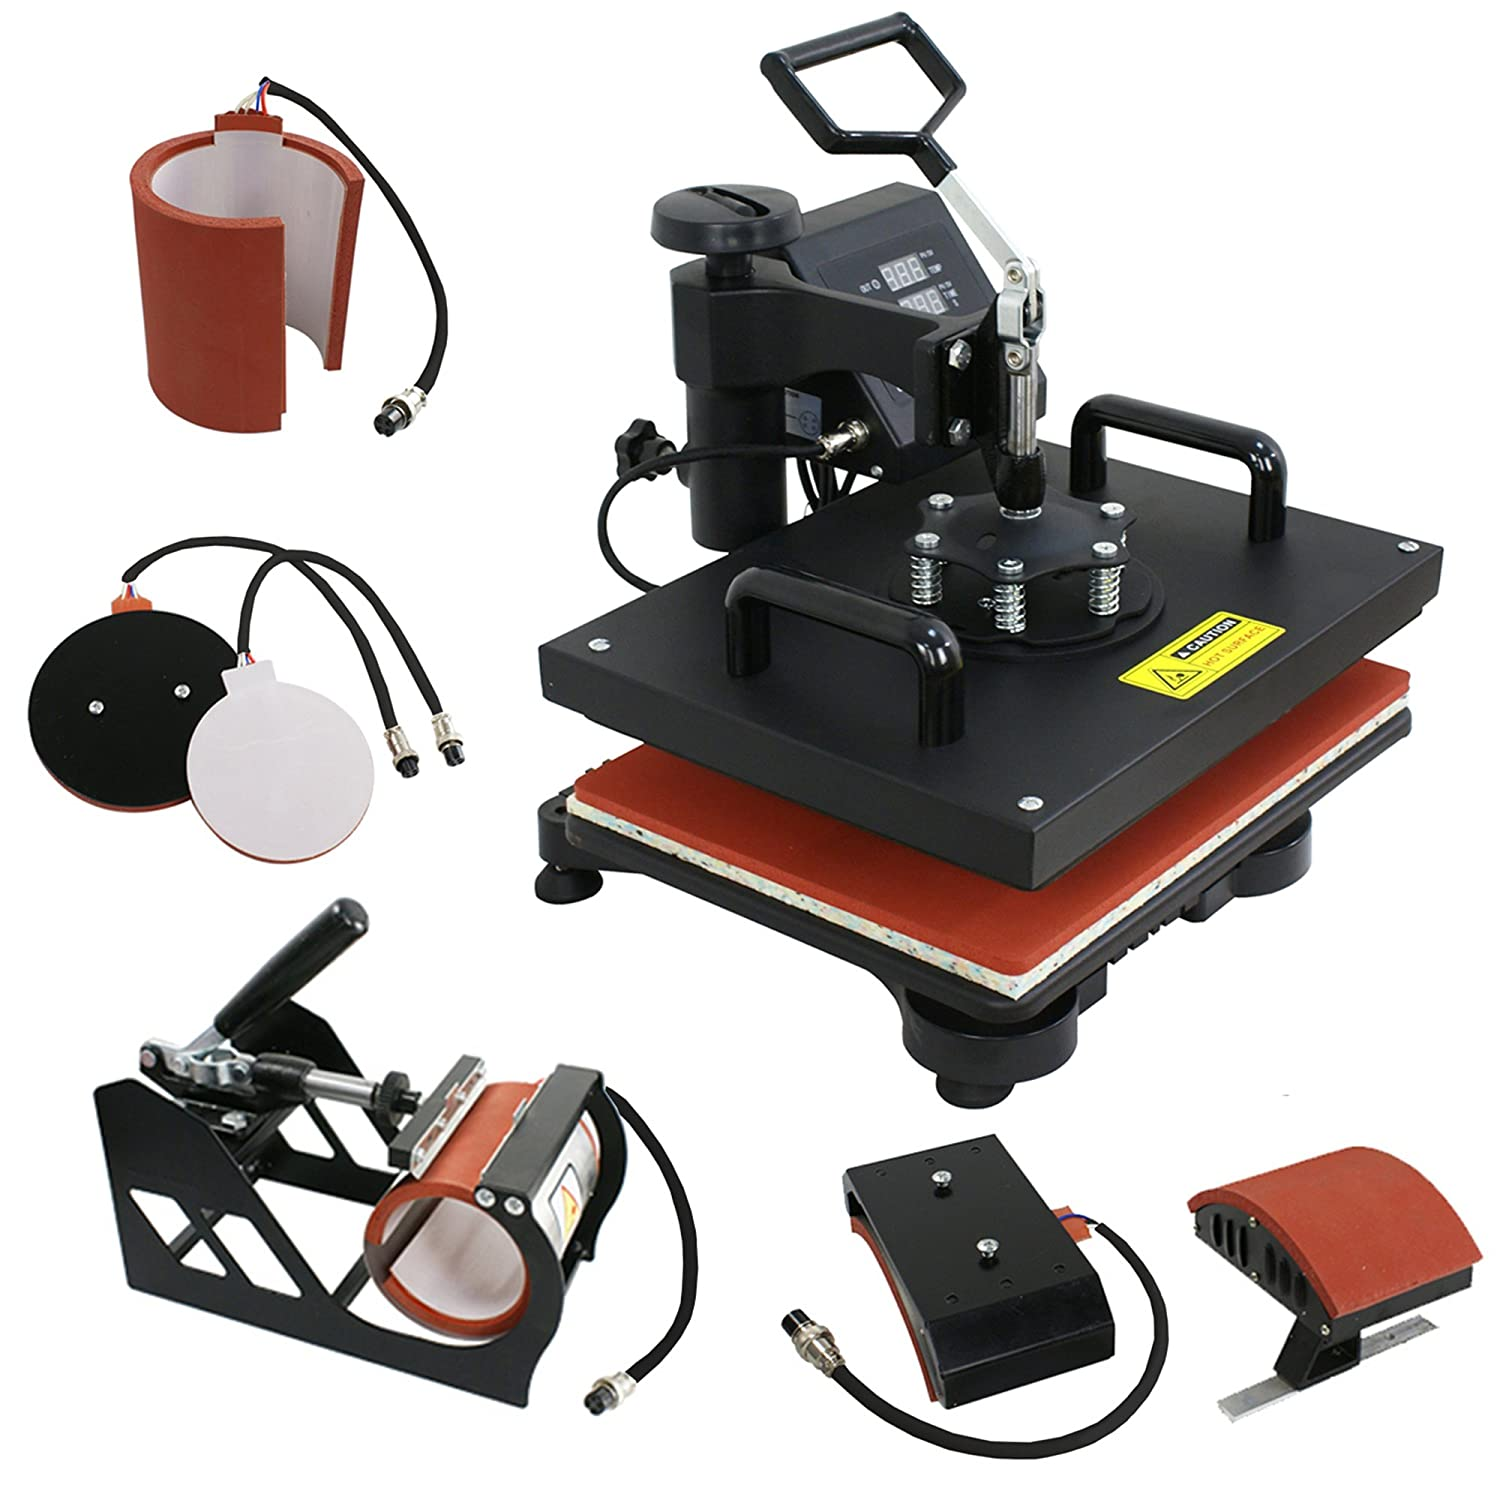 F2C Pro 5 in 1 Swing-away Digital Transfer Sublimation Heat Press Machine Hat/Mug/Plate/Cap/T-shirt Multifunction New Black(5 in 1) F2C-D1